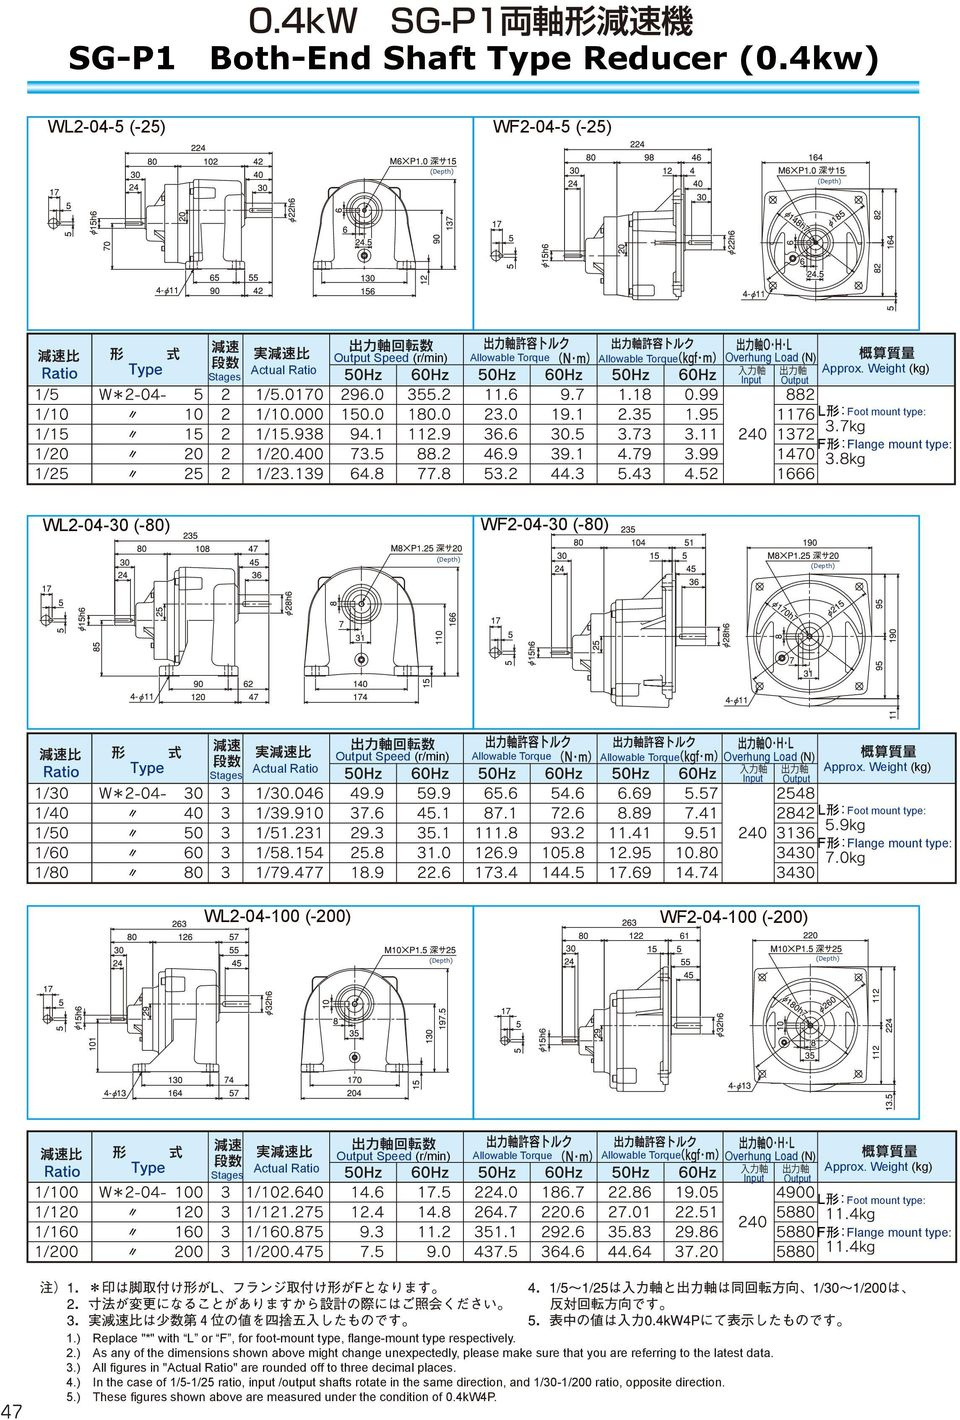 WL2-04-30 (-80) WF2-04-30 (-80) Allowable Torque Stages Actual Ratio Output Speed (r/min) Allowable Torque Overhung Load (N) Input Output